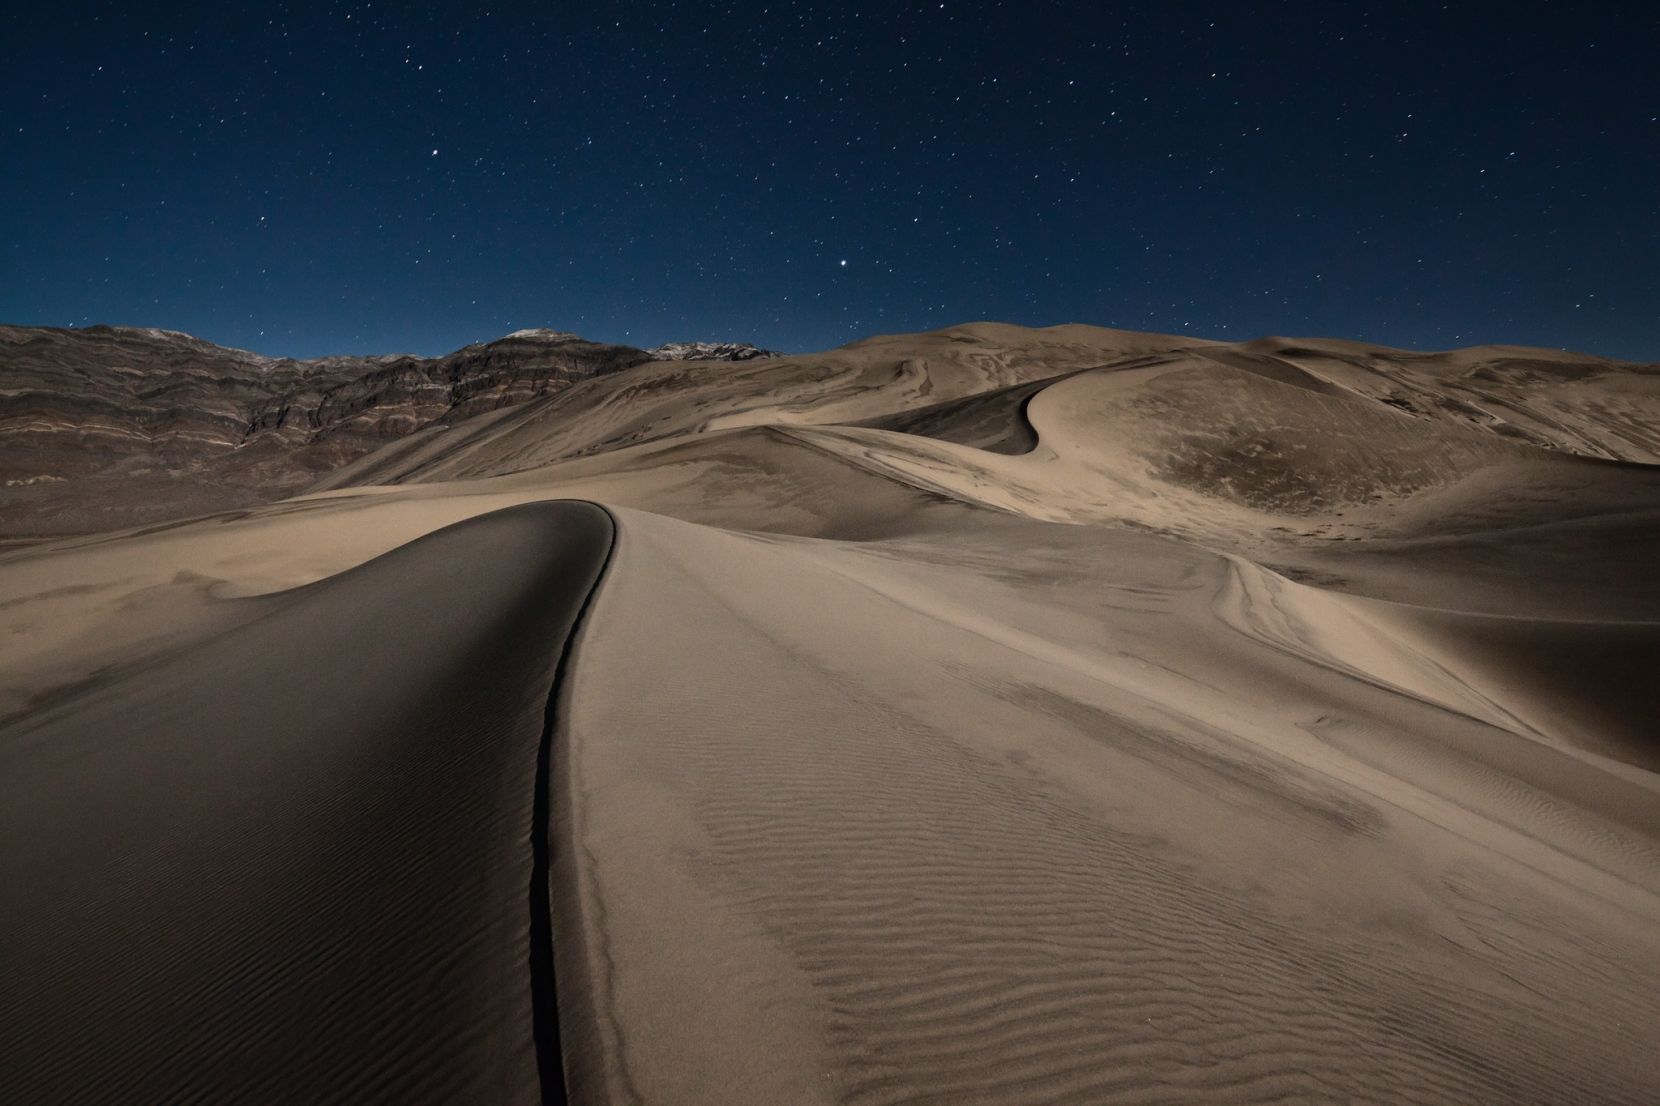 Eureka Dunes - an incredible lunar location out in the middle of nowhere... a real highlight of the trip